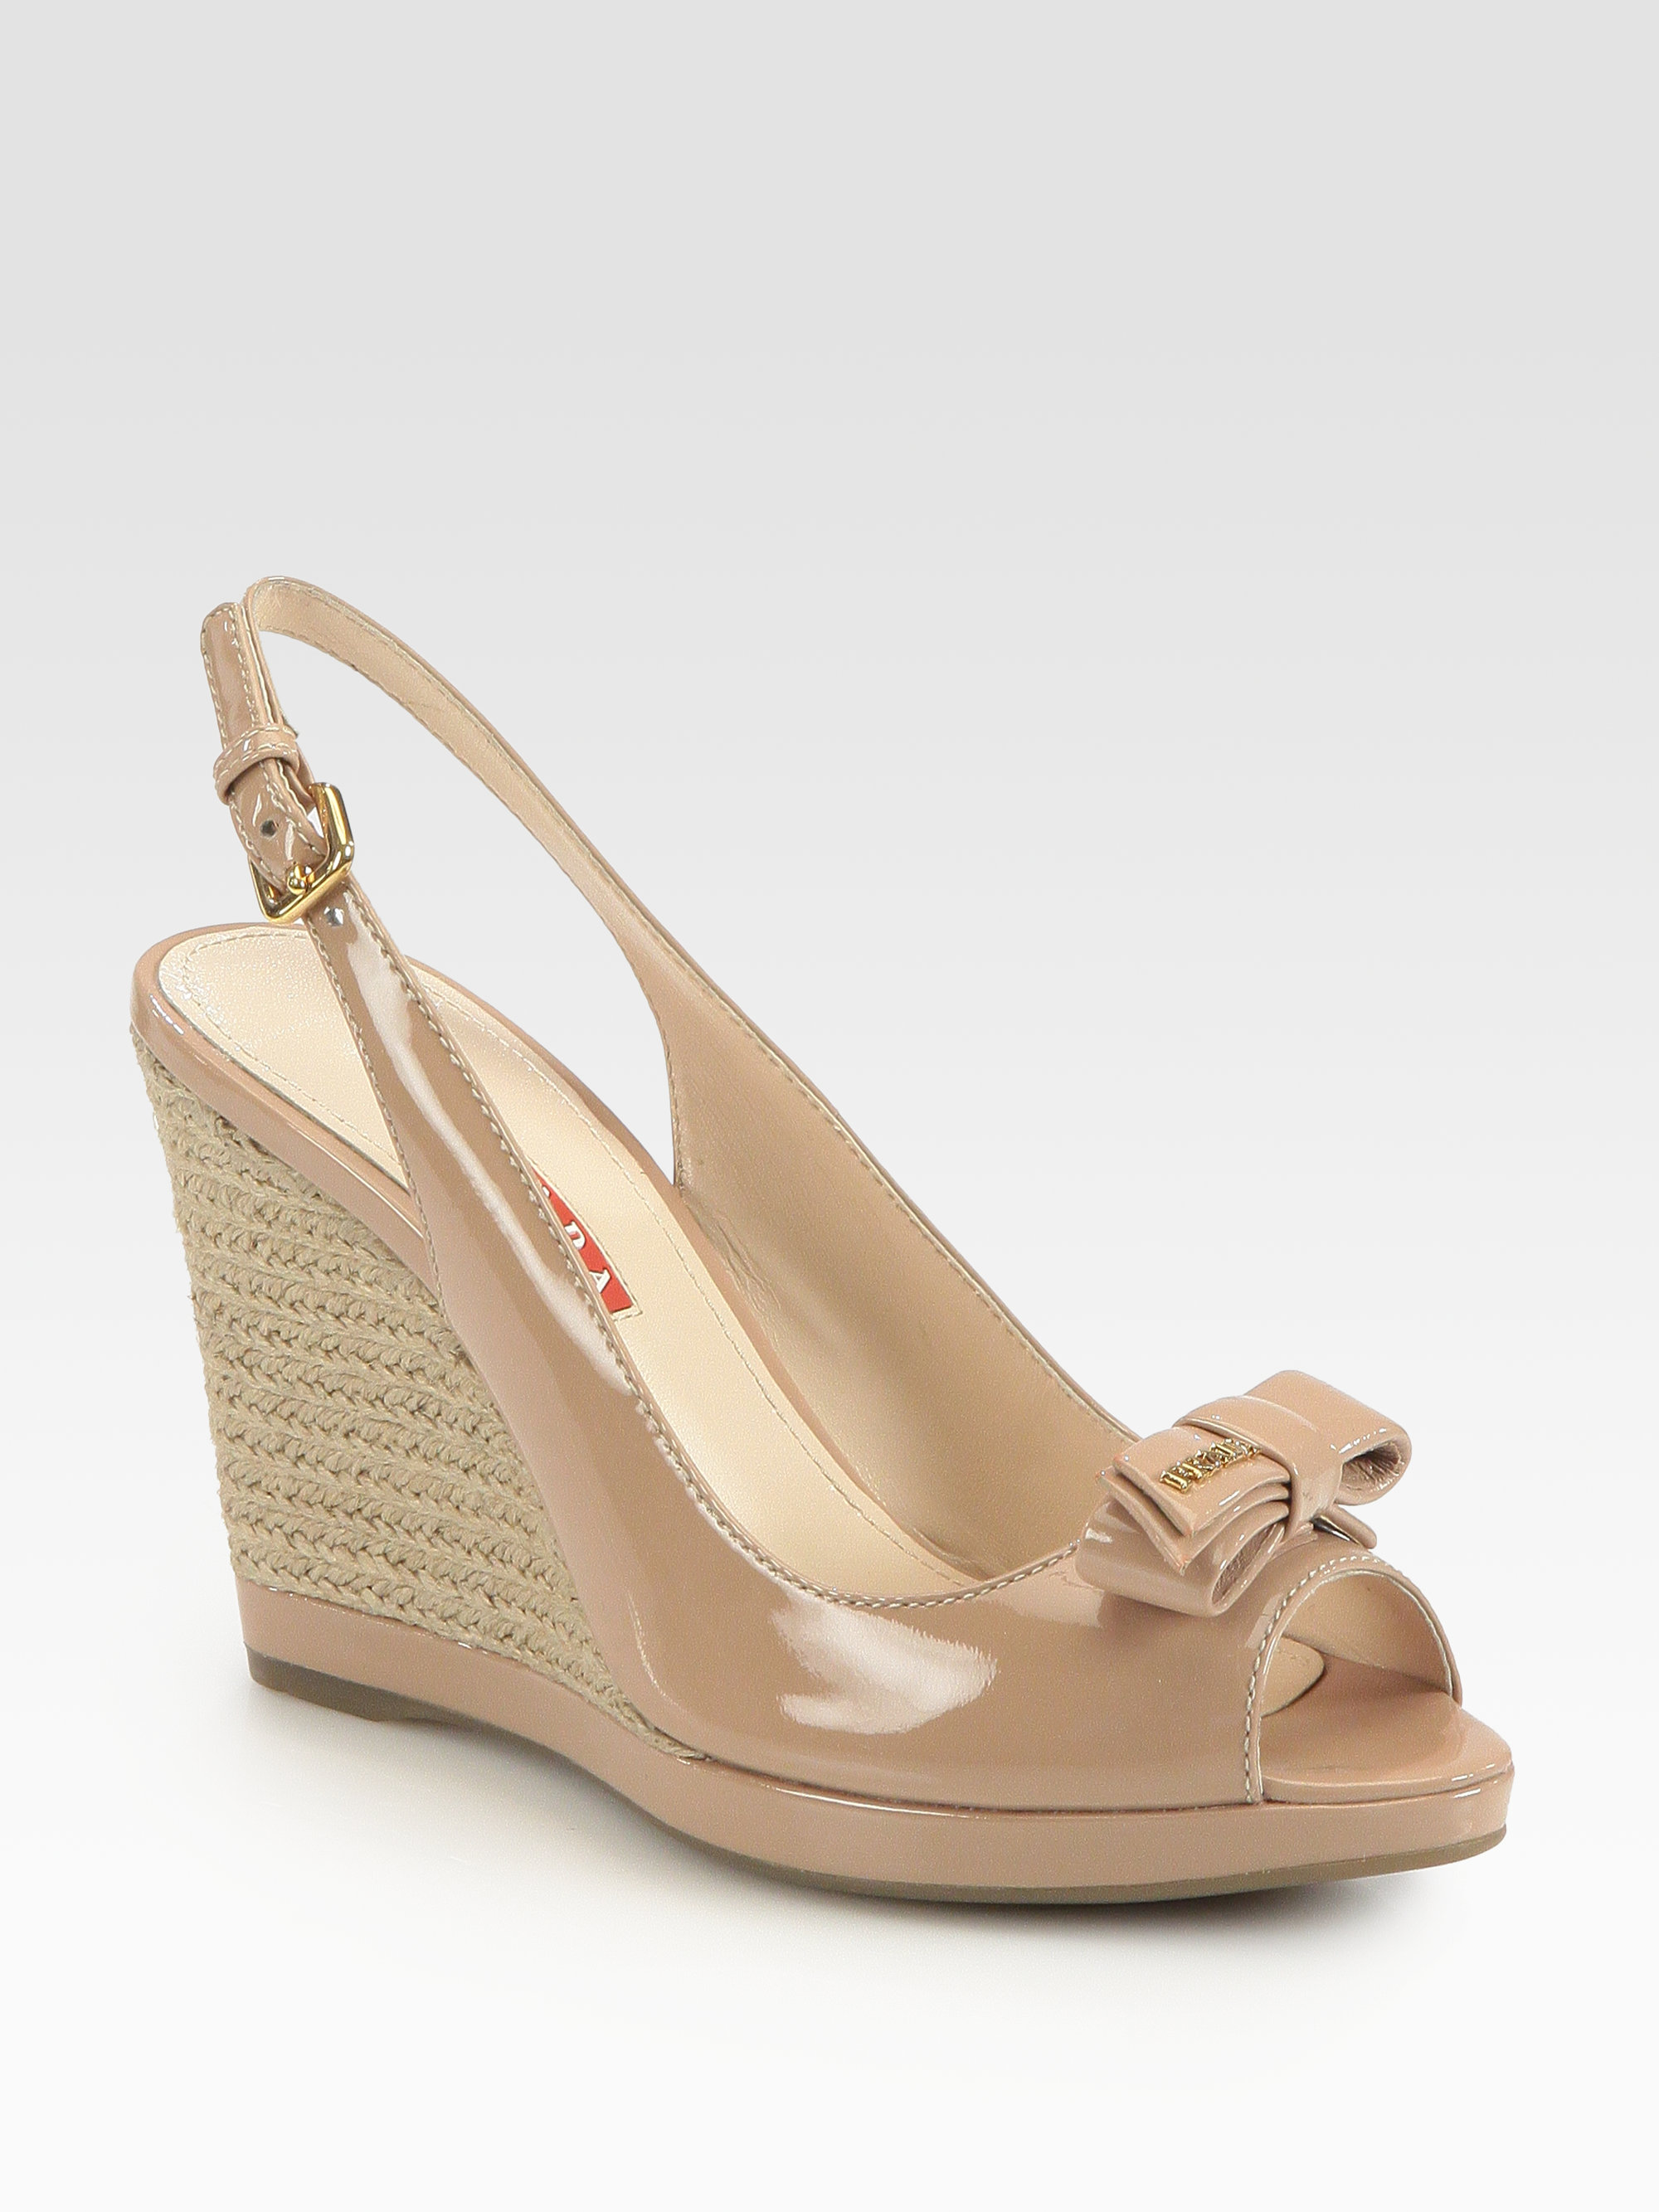 2be3edad541 Lyst - Prada Patent Leather Bow Espadrille Wedge Sandals in Natural